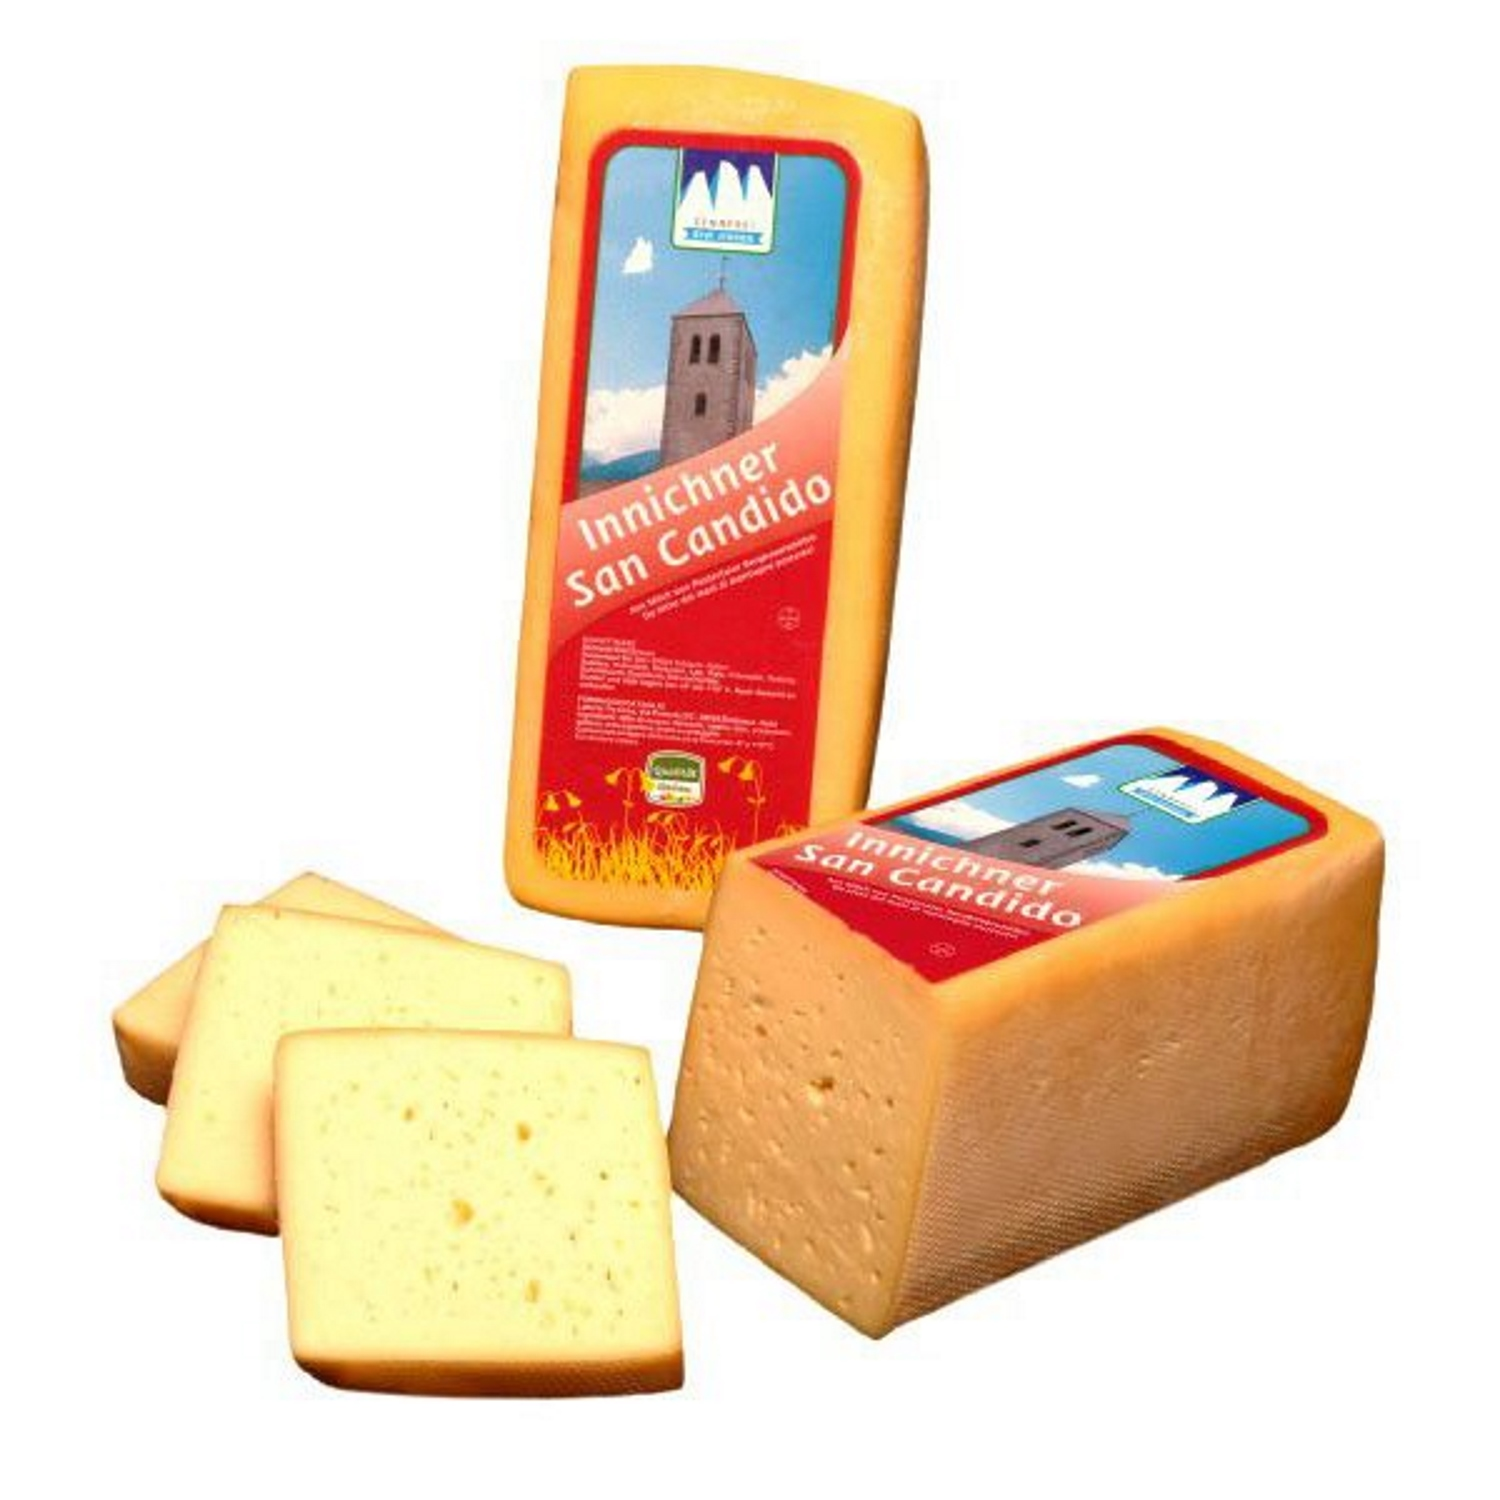 Innichner pole cheese form appr. 3,50 kg. - Dairy Three Peaks